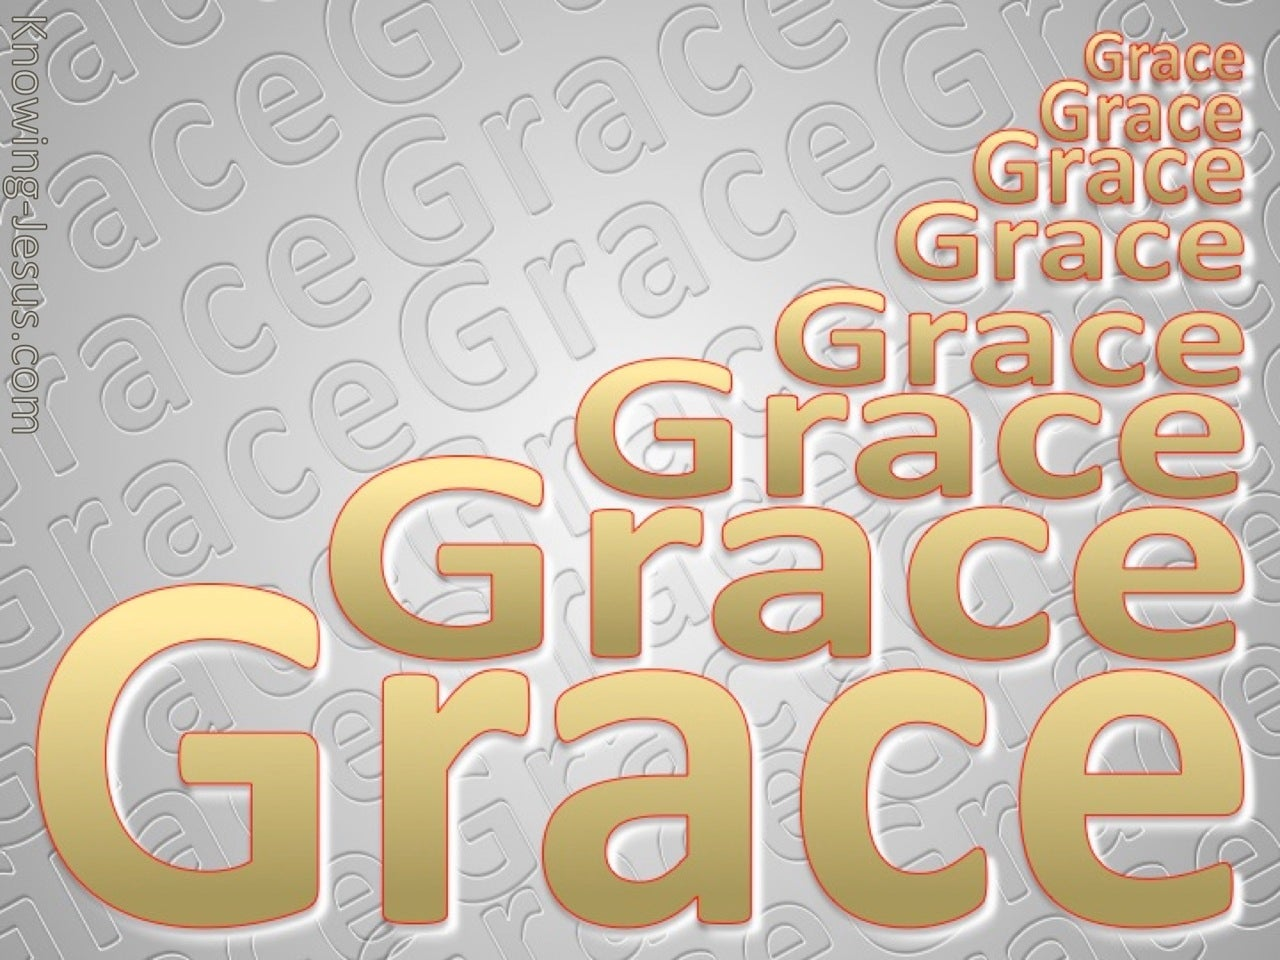 Grace Upon Grace (devotional)12-31   (gold)